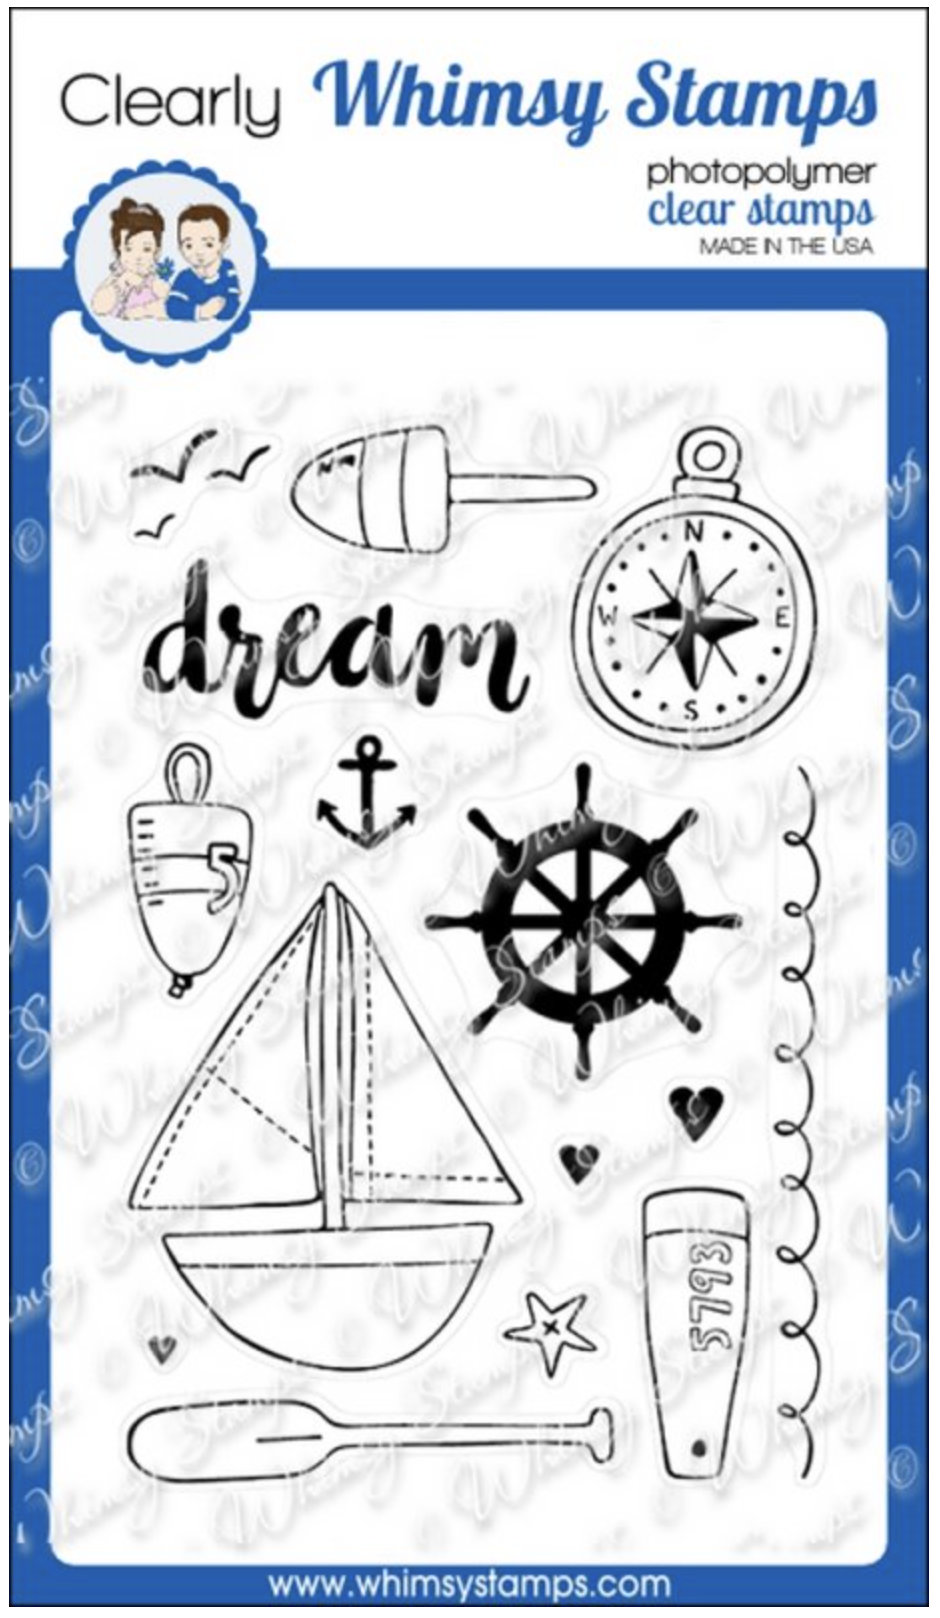 whimsystamps_2